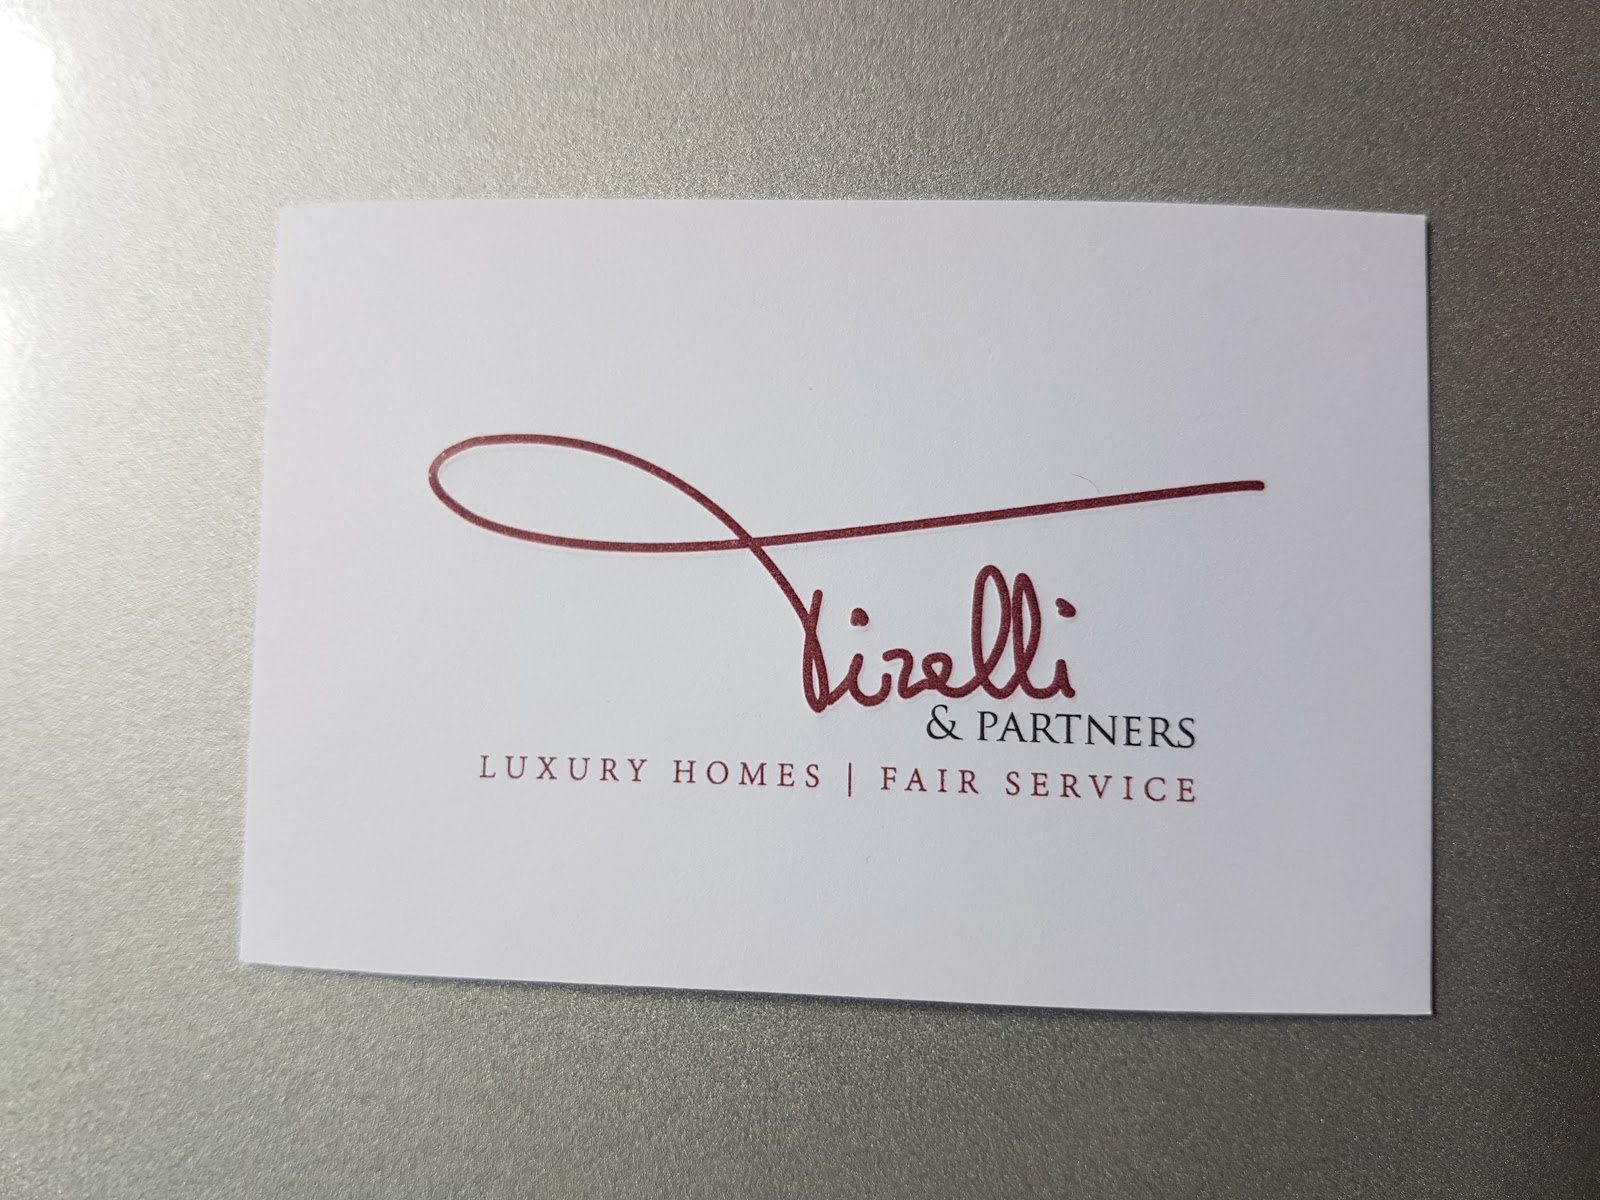 27 real estate business cards we love… – web hot 1